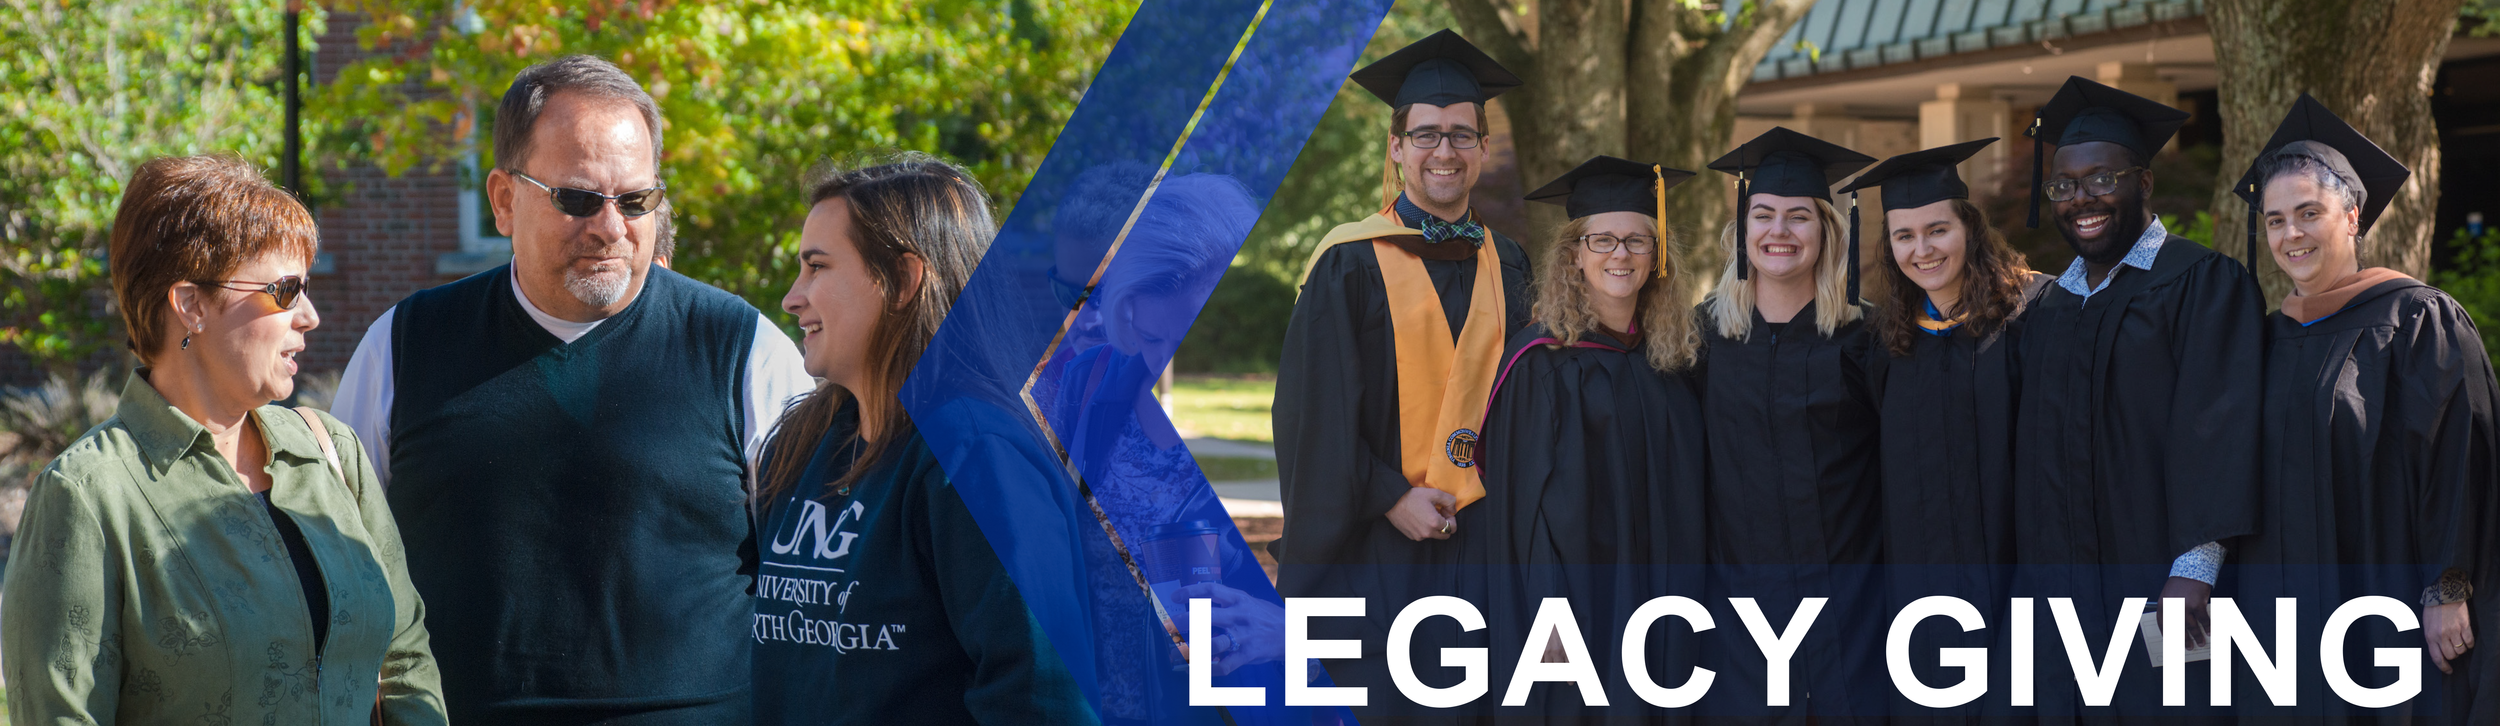 Legacy Giving page banner: First image shows a University of North Georgia student talking to her parents. The second image is of six University of North Georgia graduates wearing their cap and gowns while posing for a photo.